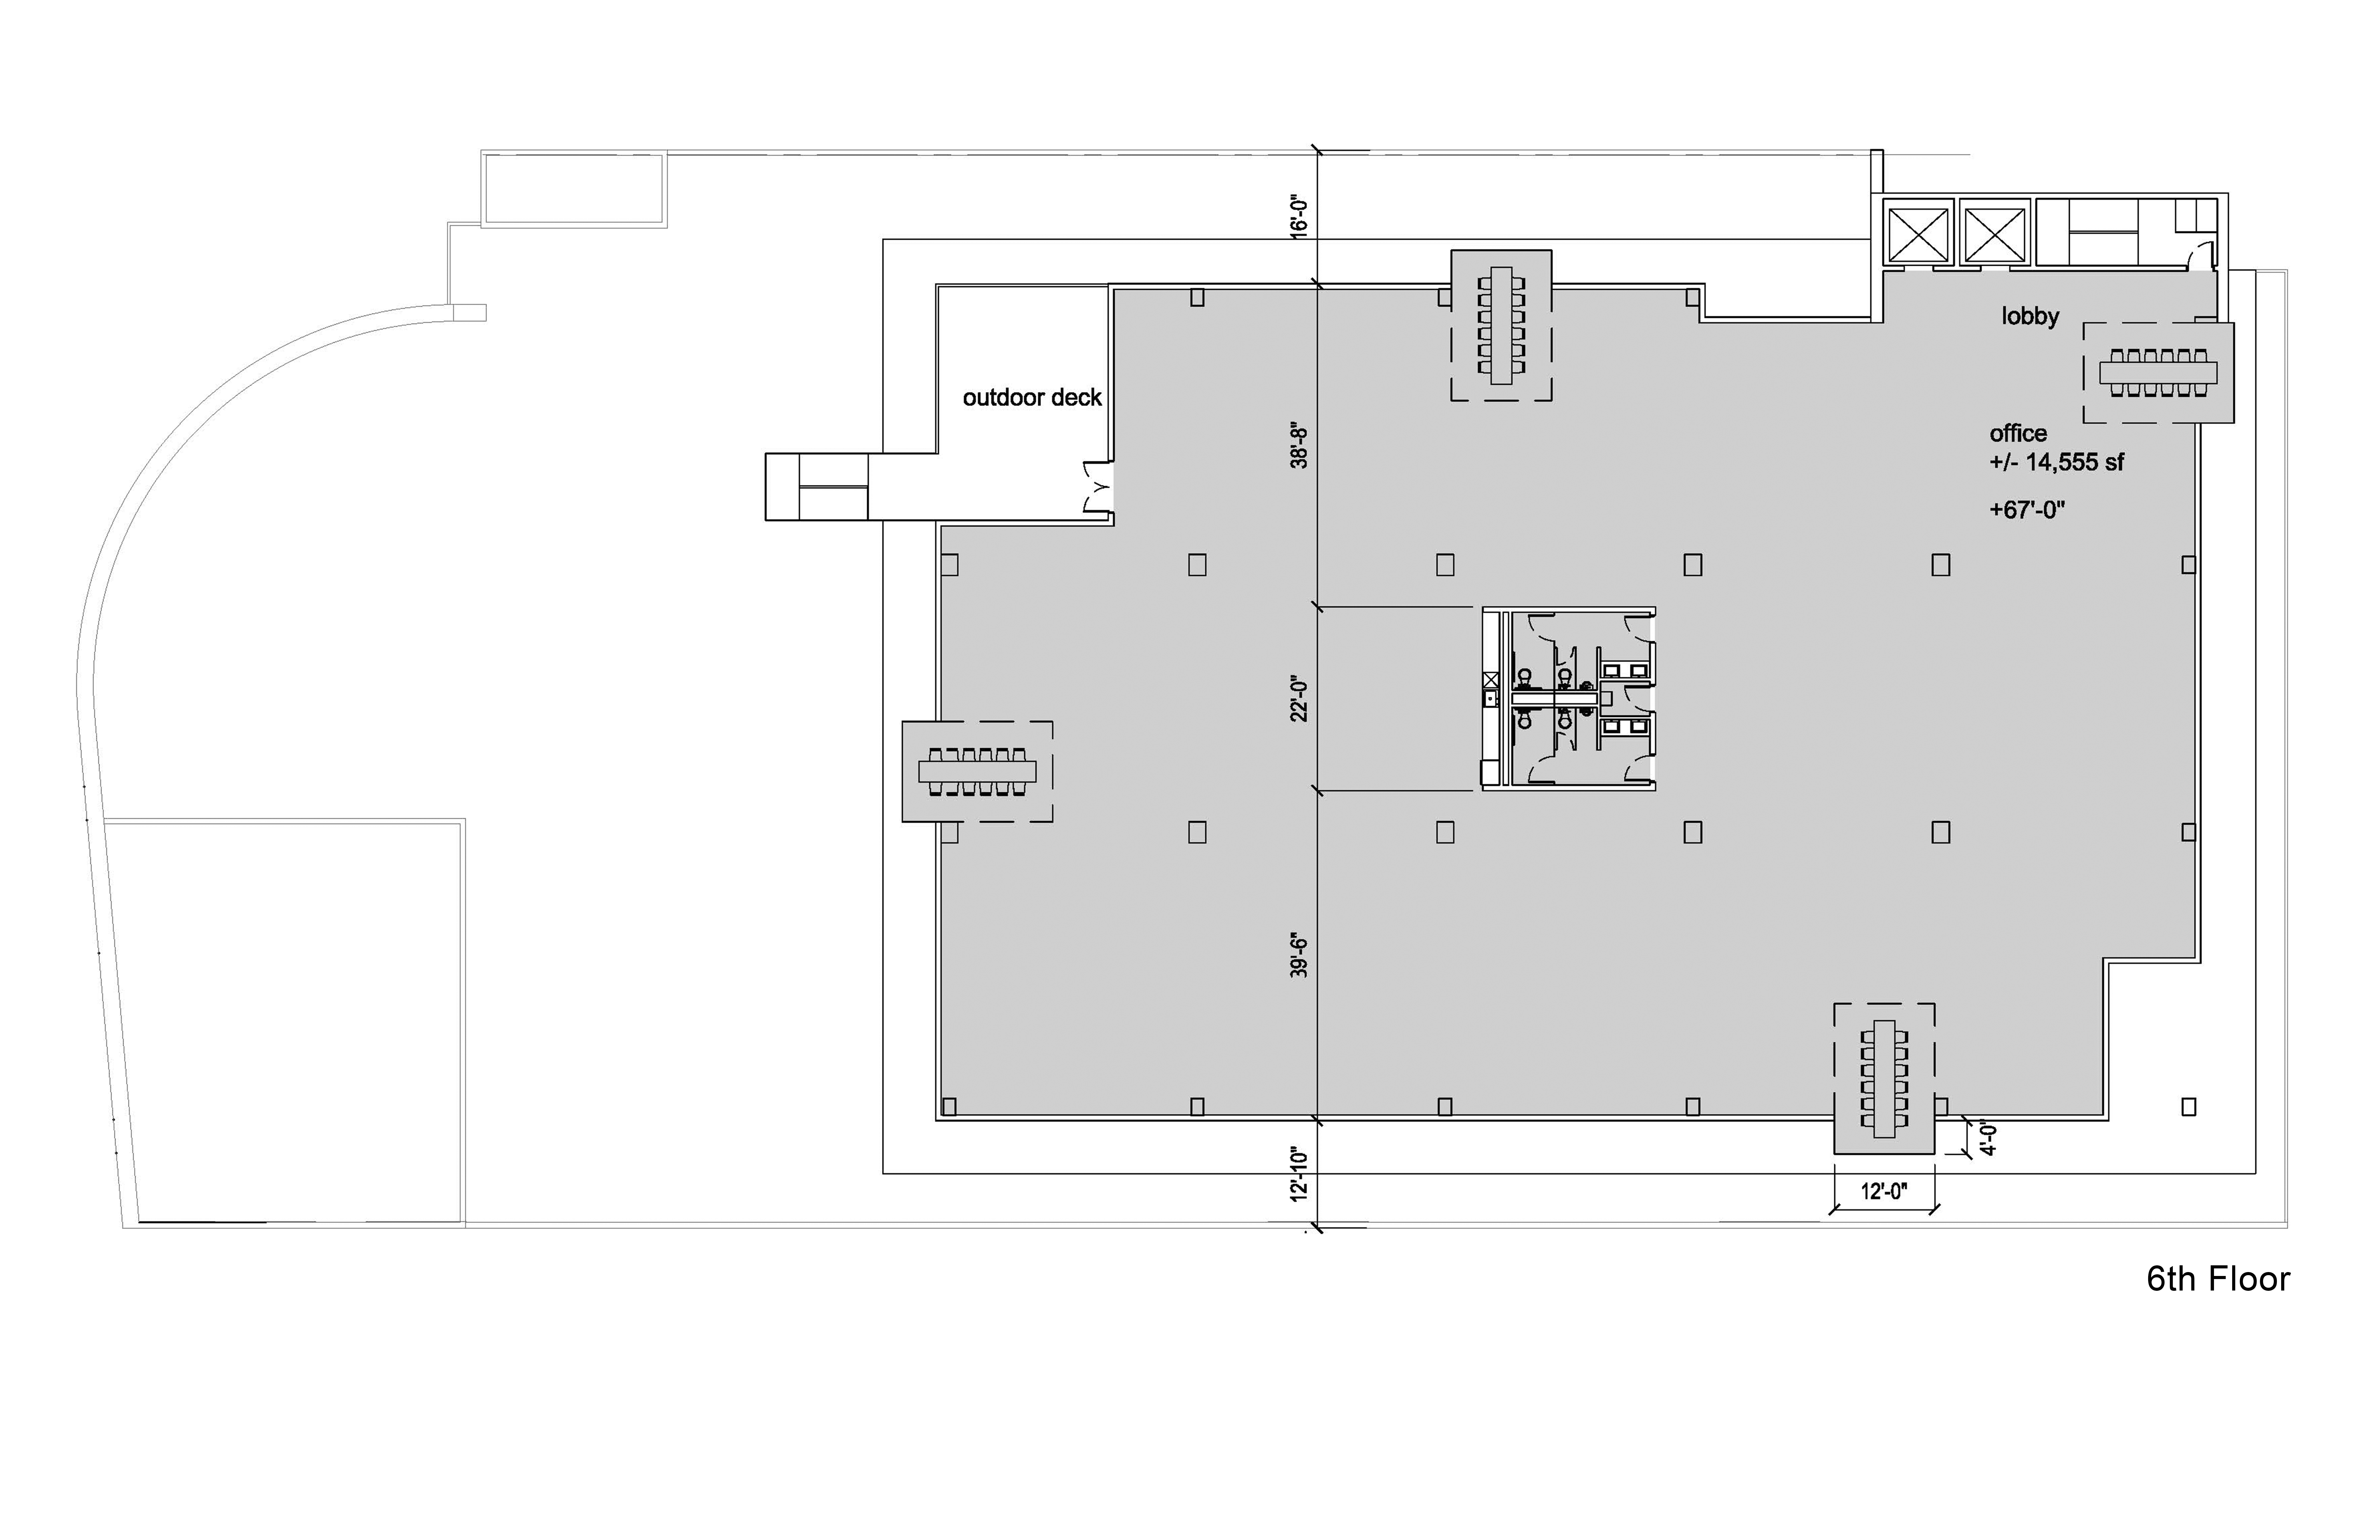 925 La Brea Floor 6 Plan